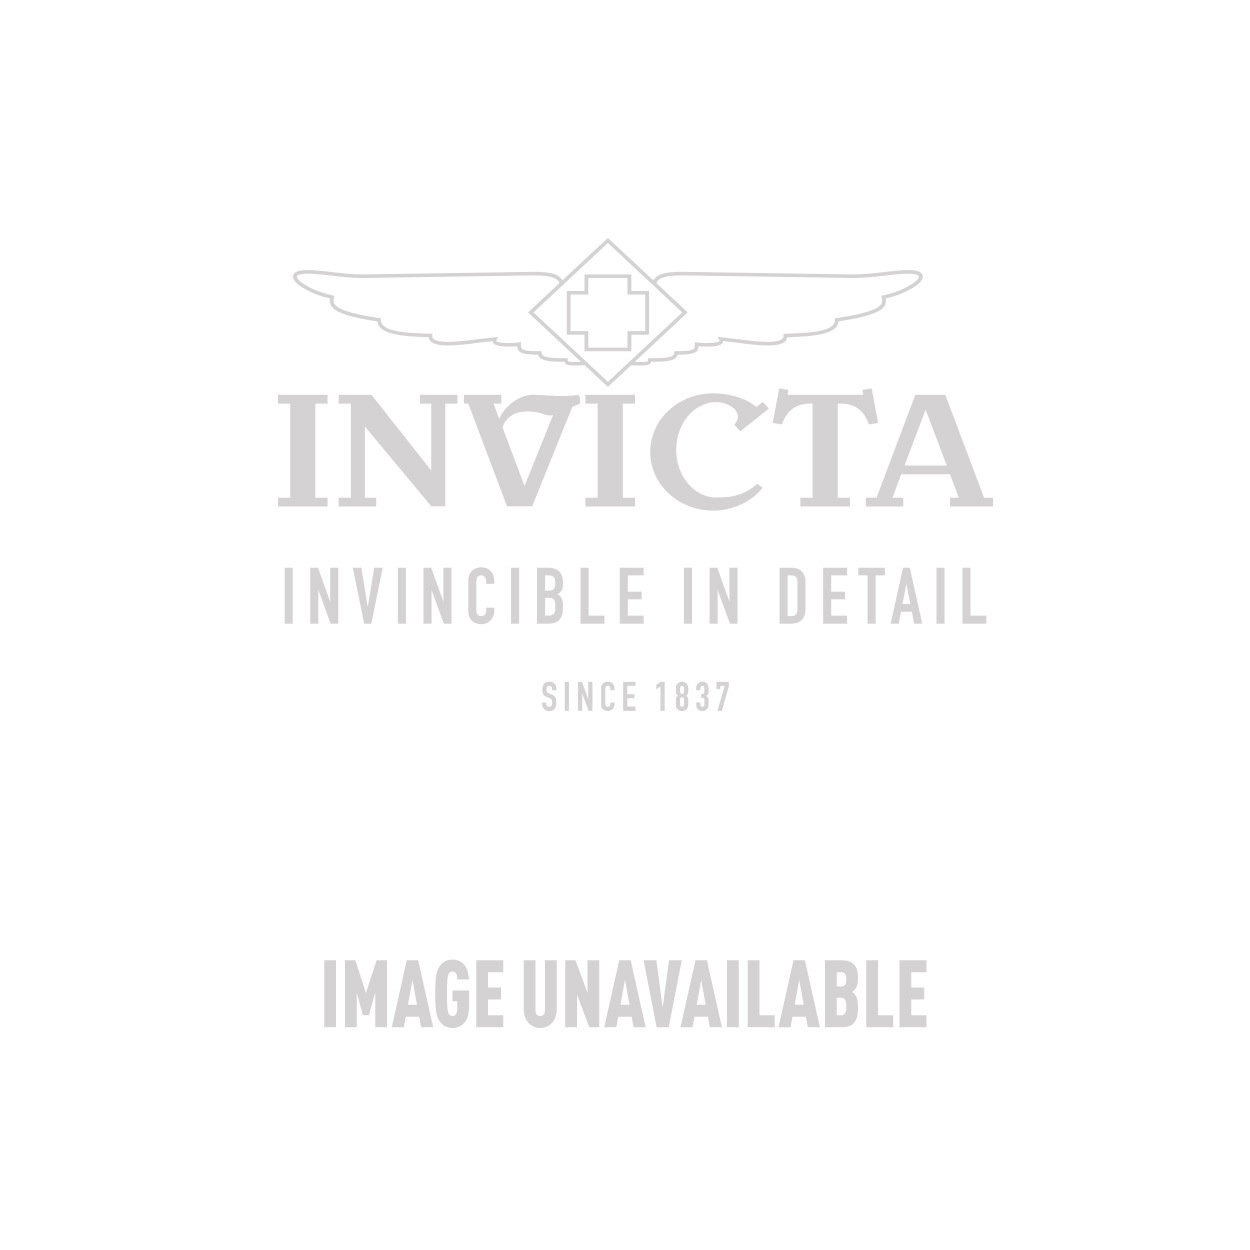 Invicta Bolt Swiss Made Quartz Watch - Black, Stainless Steel case with Steel, Black tone Stainless Steel, Polyurethane band - Model 17464